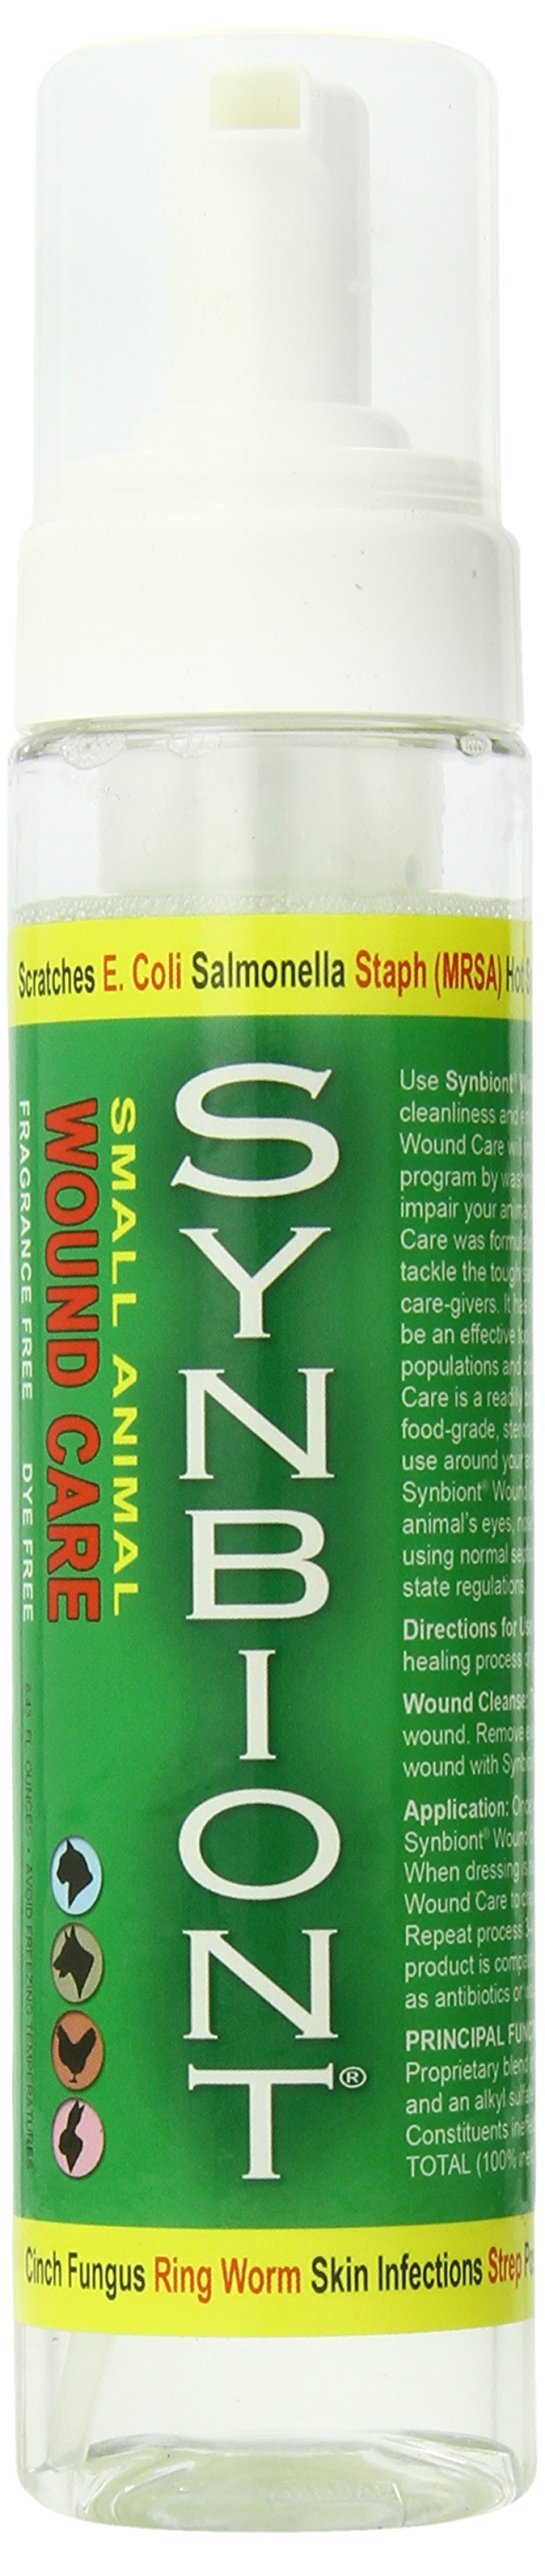 Synbiont Wound Care 8.43 Ounces